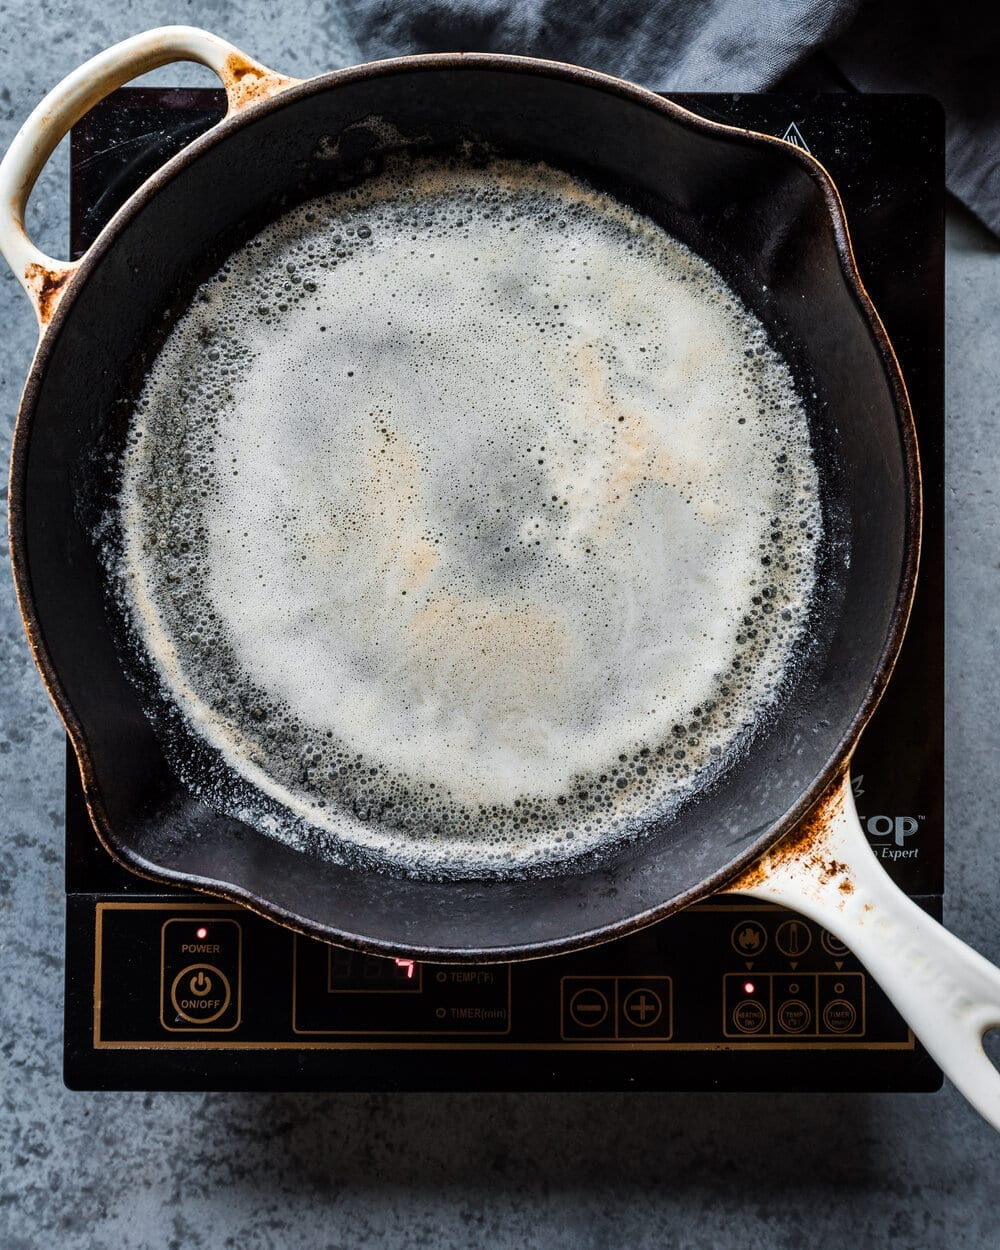 butter foaming in cast iron skillet